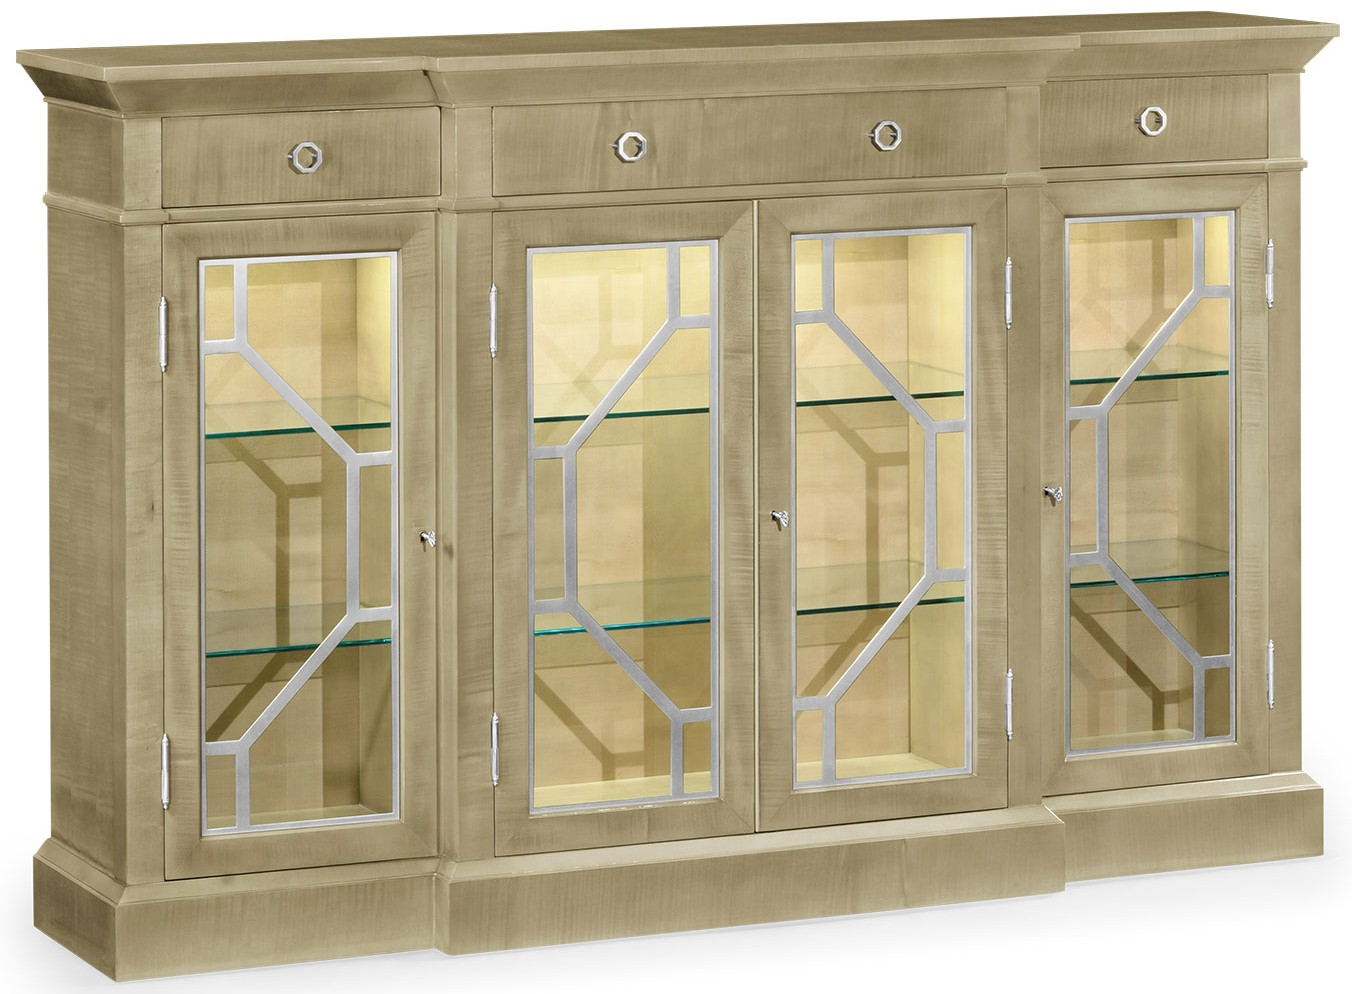 Breakfronts U0026 China Cabinets Modern Light Color Breakfront Display Cabinet